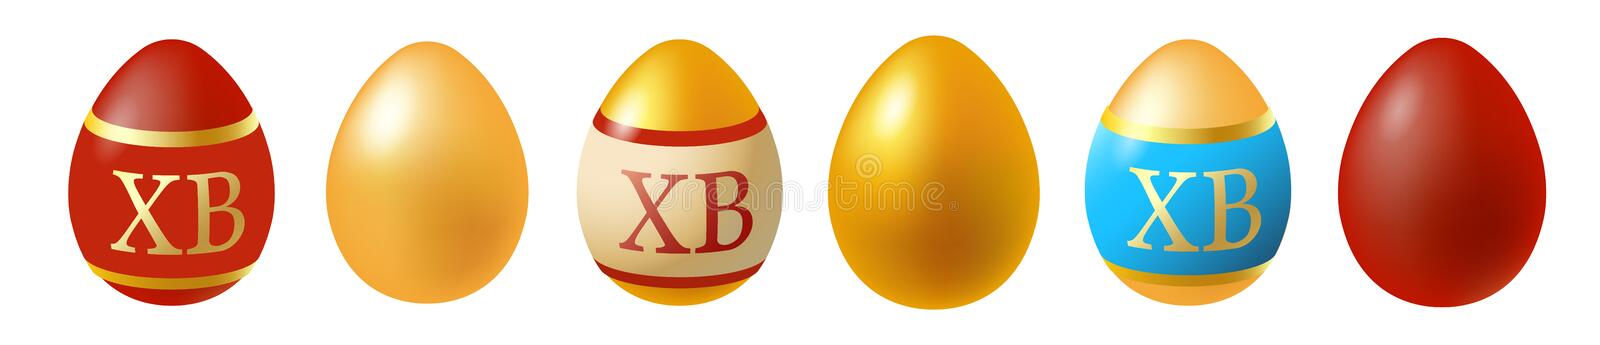 Happy Easter. Set of Easter eggs. Spring holiday. Vector illustration of Easter eggs collection on a white background. Vector illustration of Easter eggs royalty free illustration